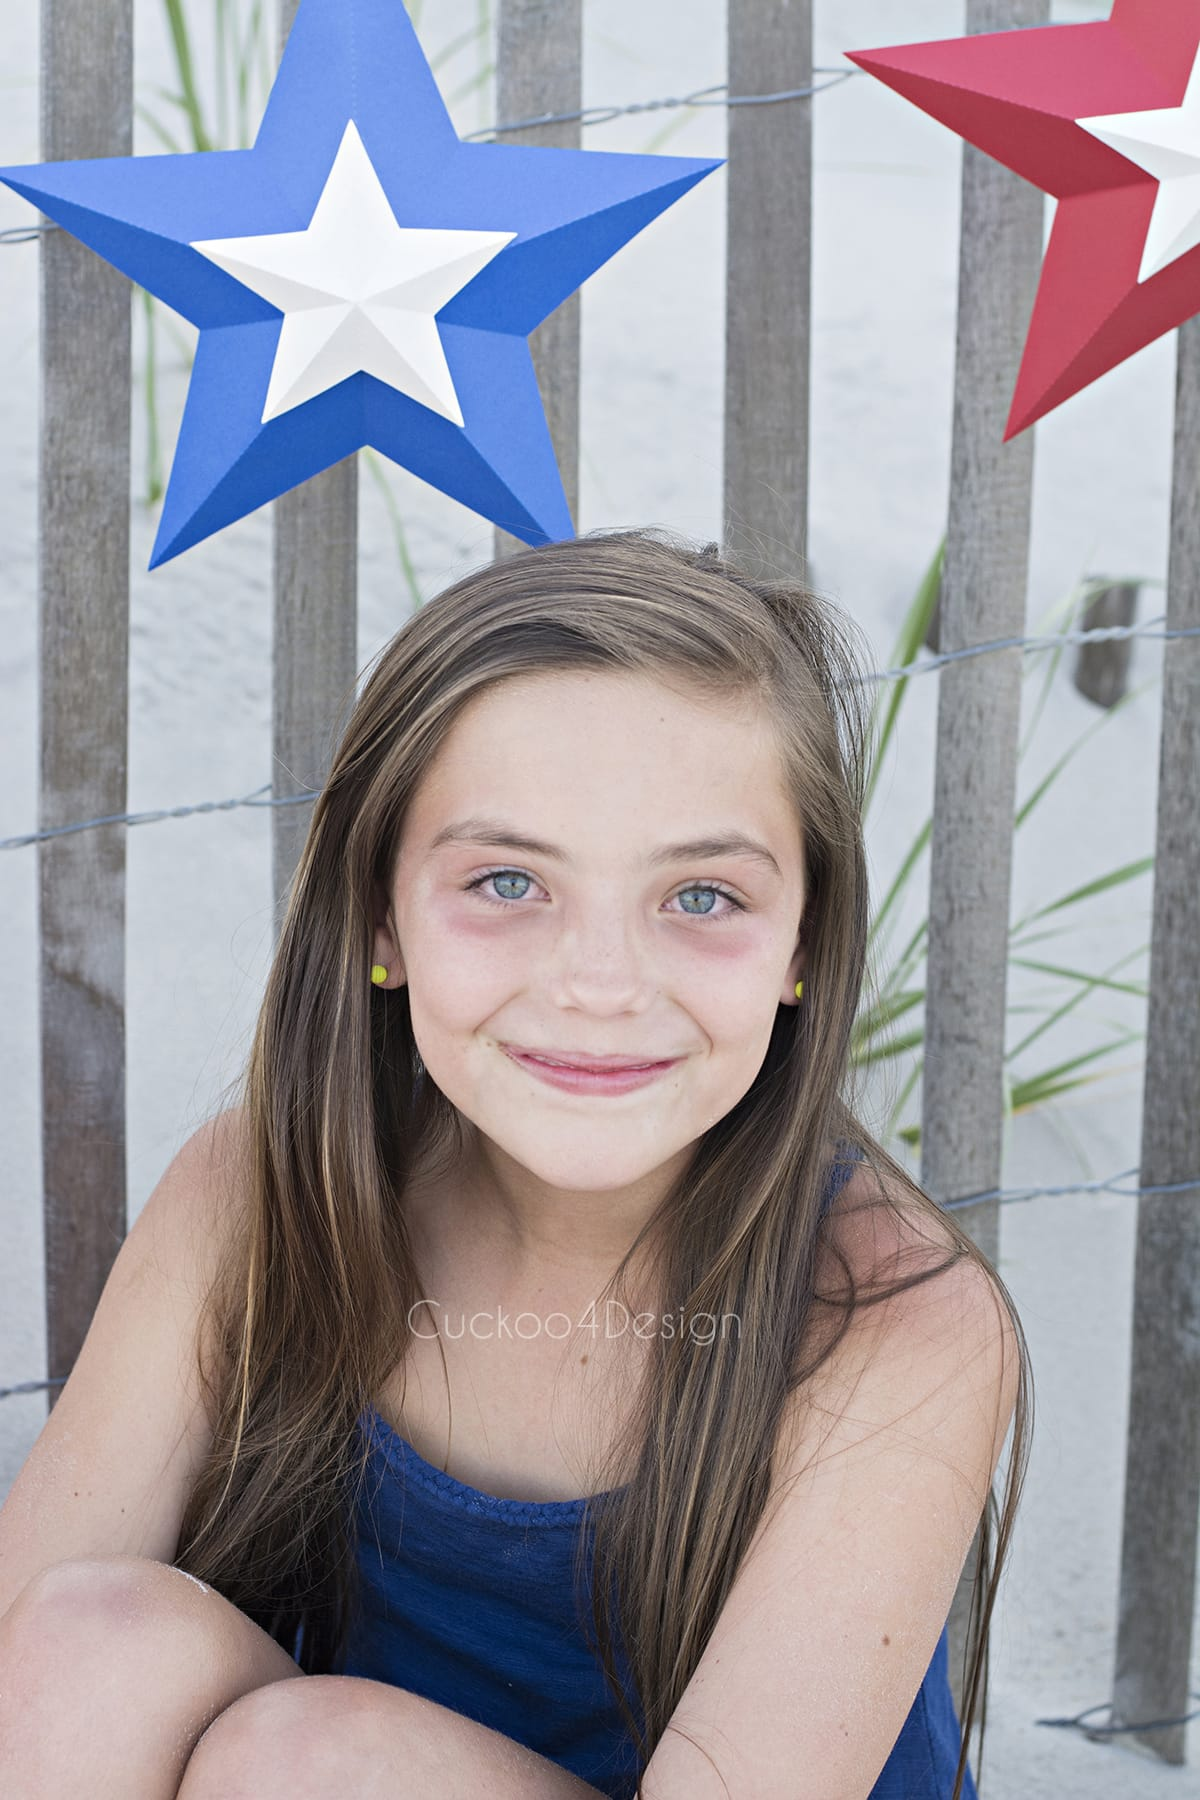 4th of July photo idea with star bunting